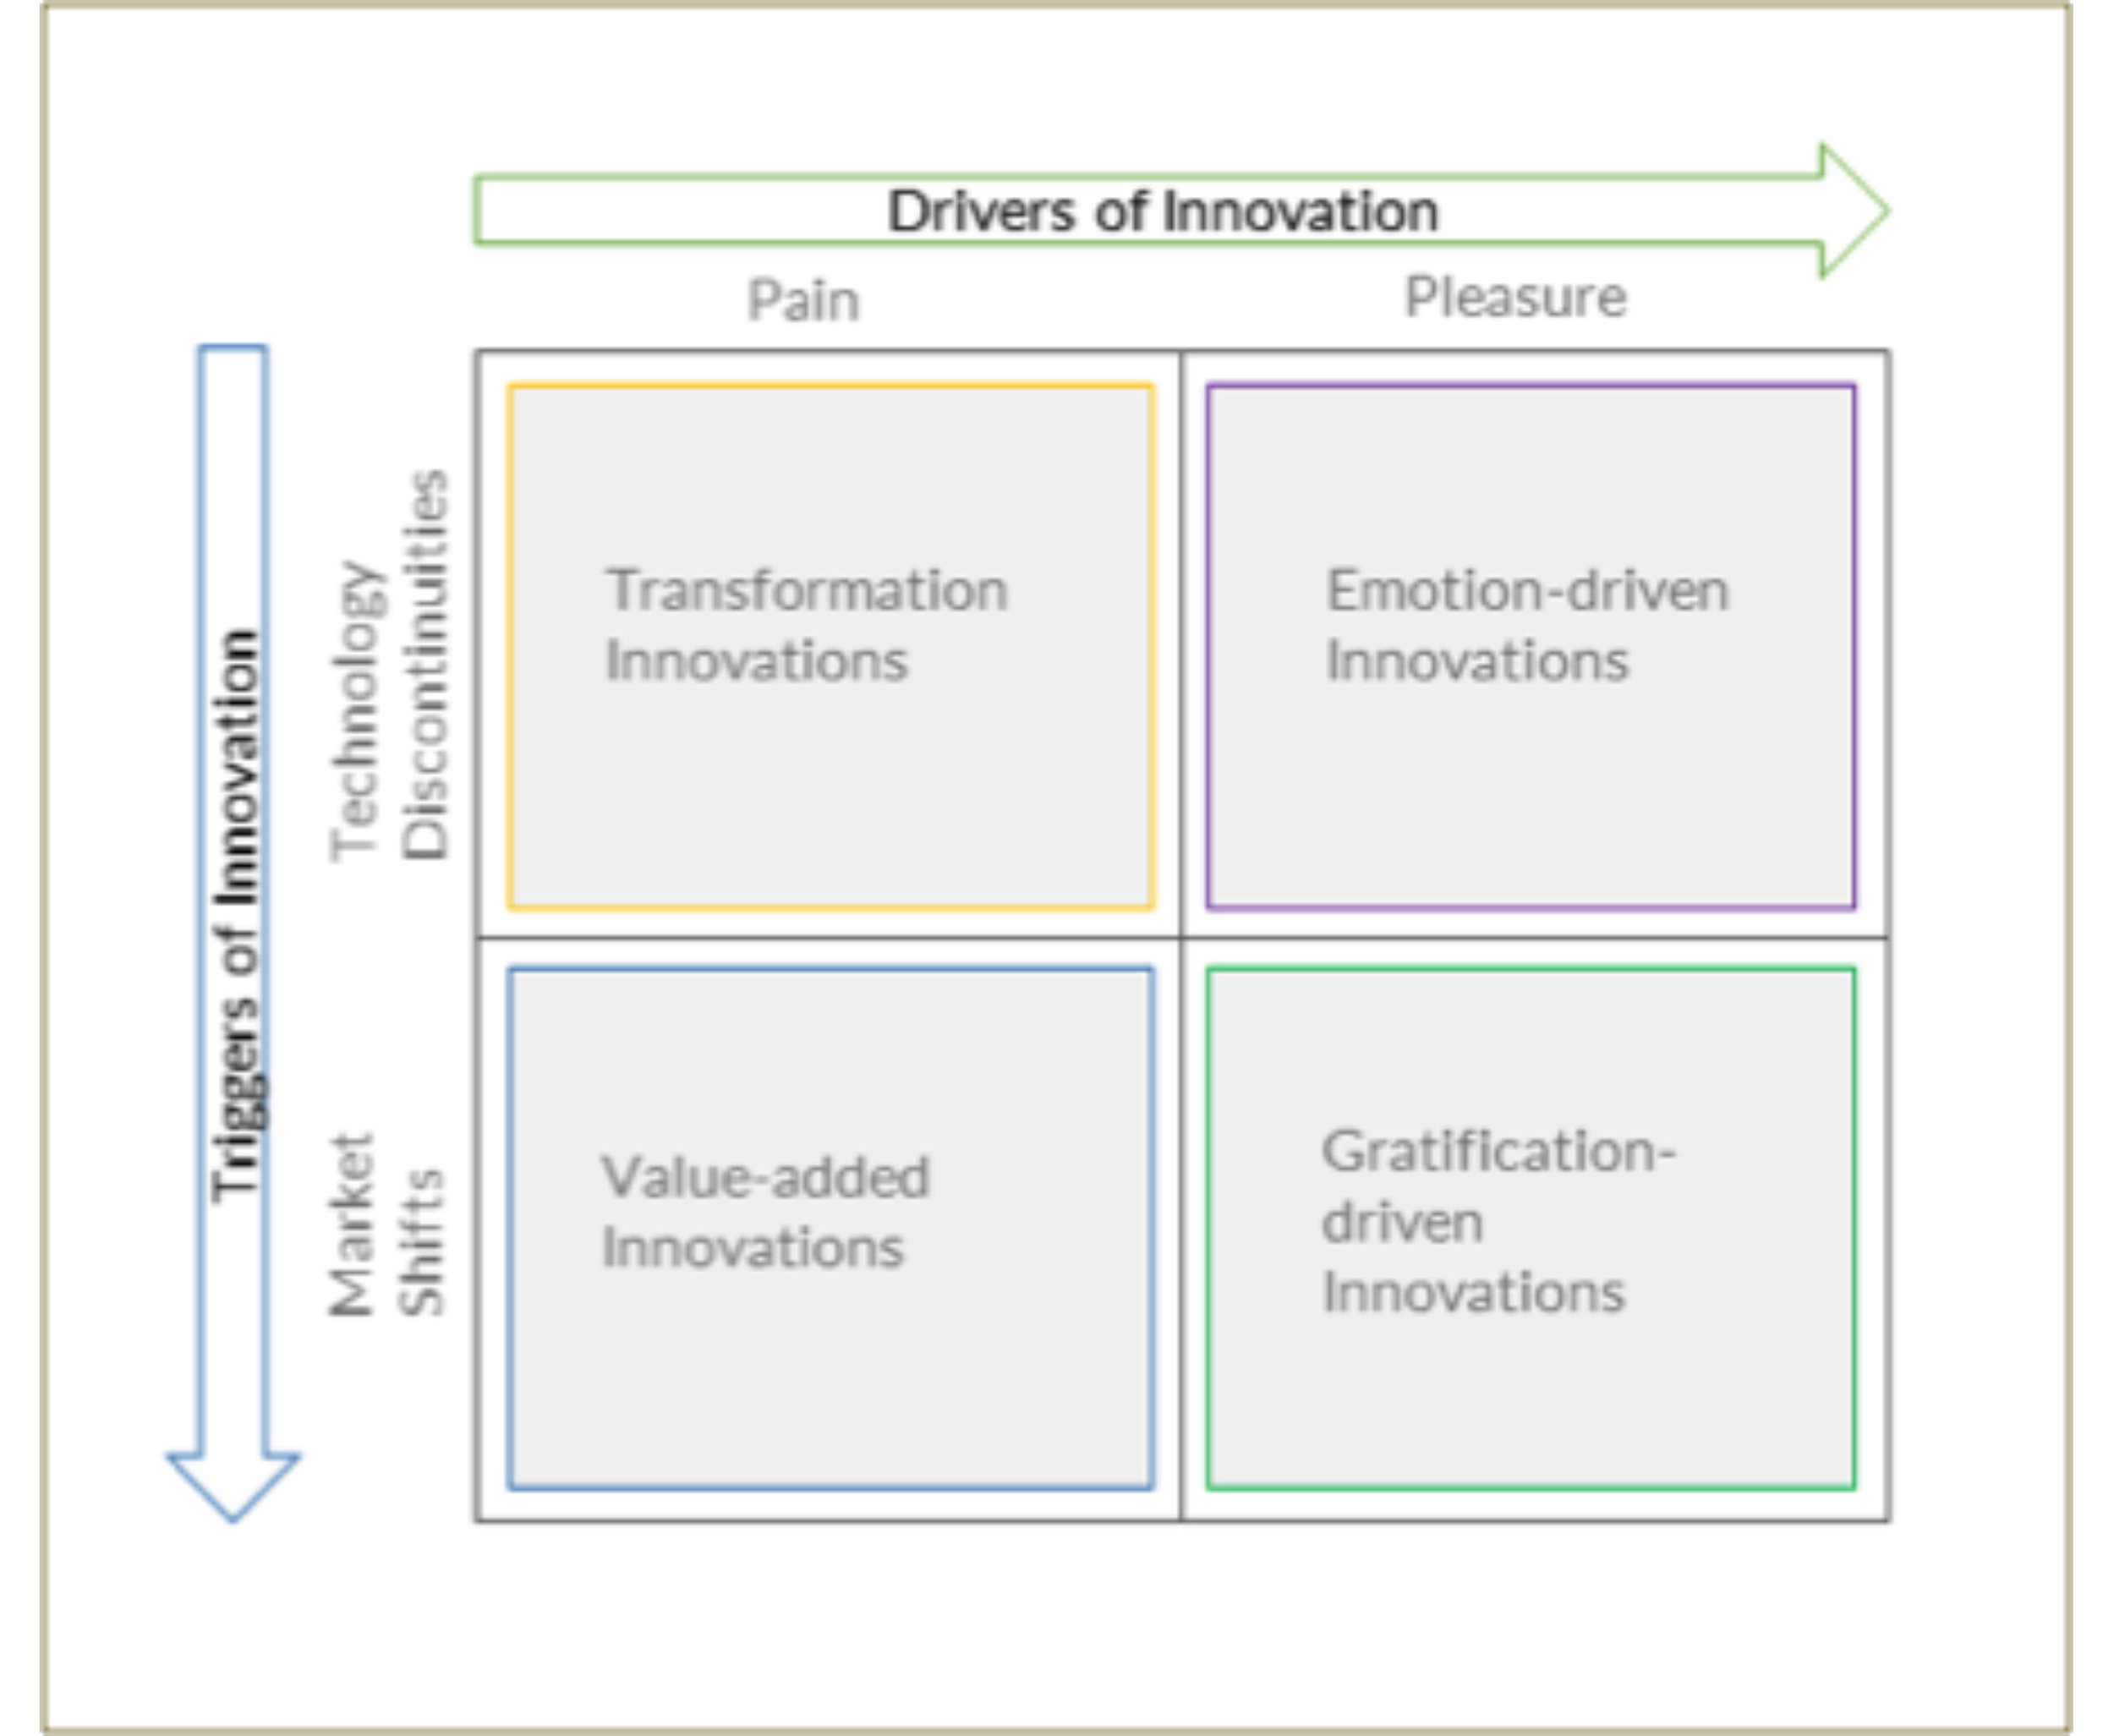 Figure      SEQ Figure \* ARABIC    3      . Driver-Trigger Innovation Typologies    Source:    Innovation Cube: Triggers, Drivers and Enablers for Successful Innovations, Narasimhalu, A.D., Singapore Management University (2005)